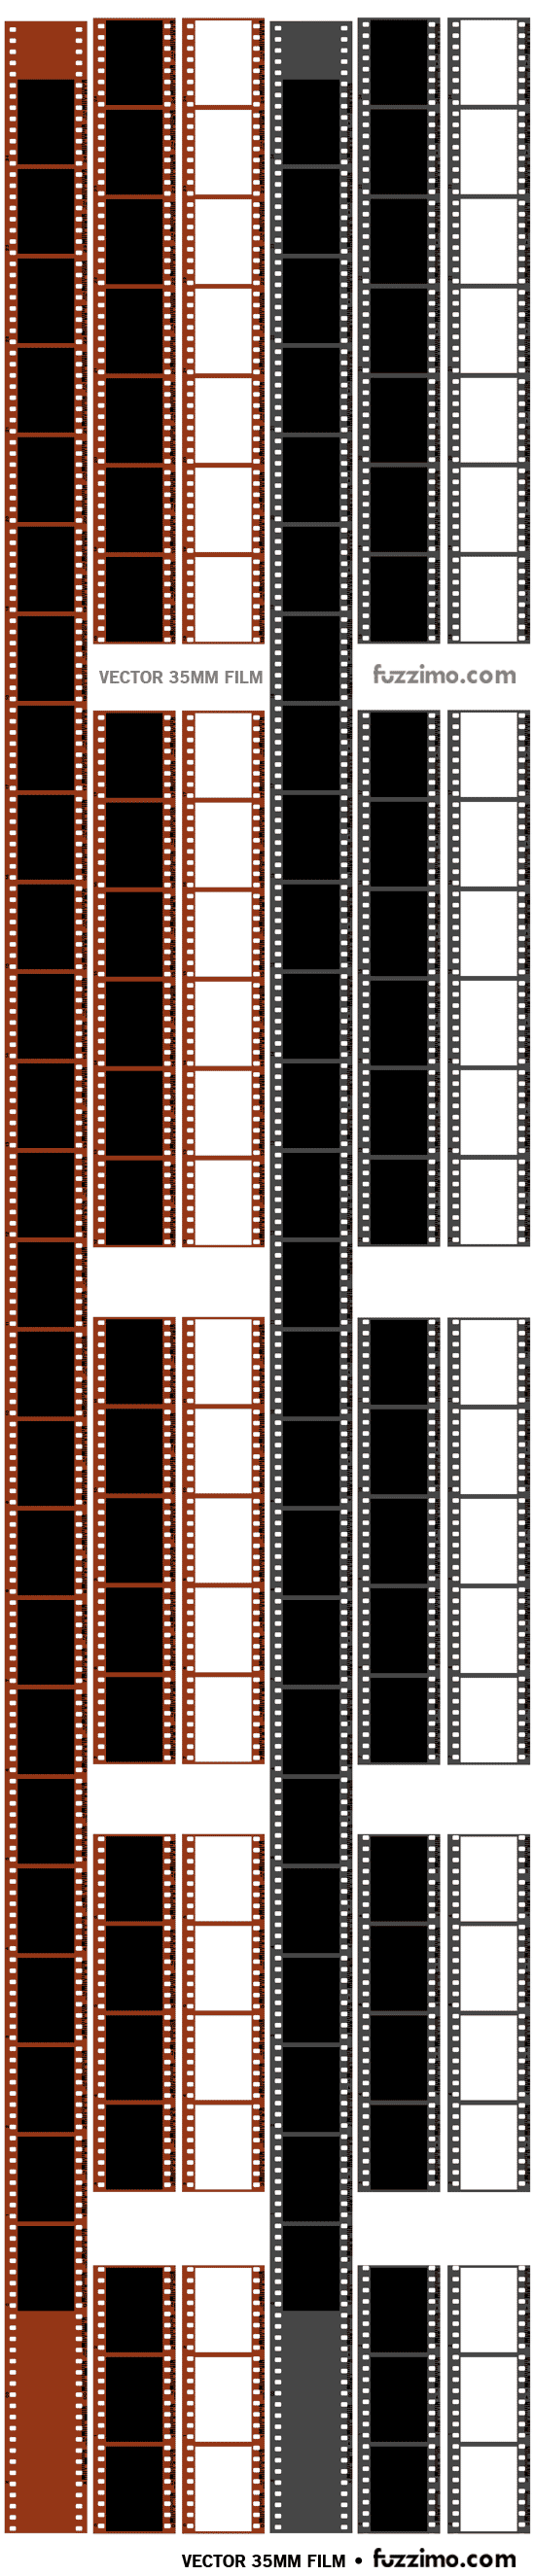 Film cs4 ai eps zip file 3 6mb download vector 35mm film cs3 ai